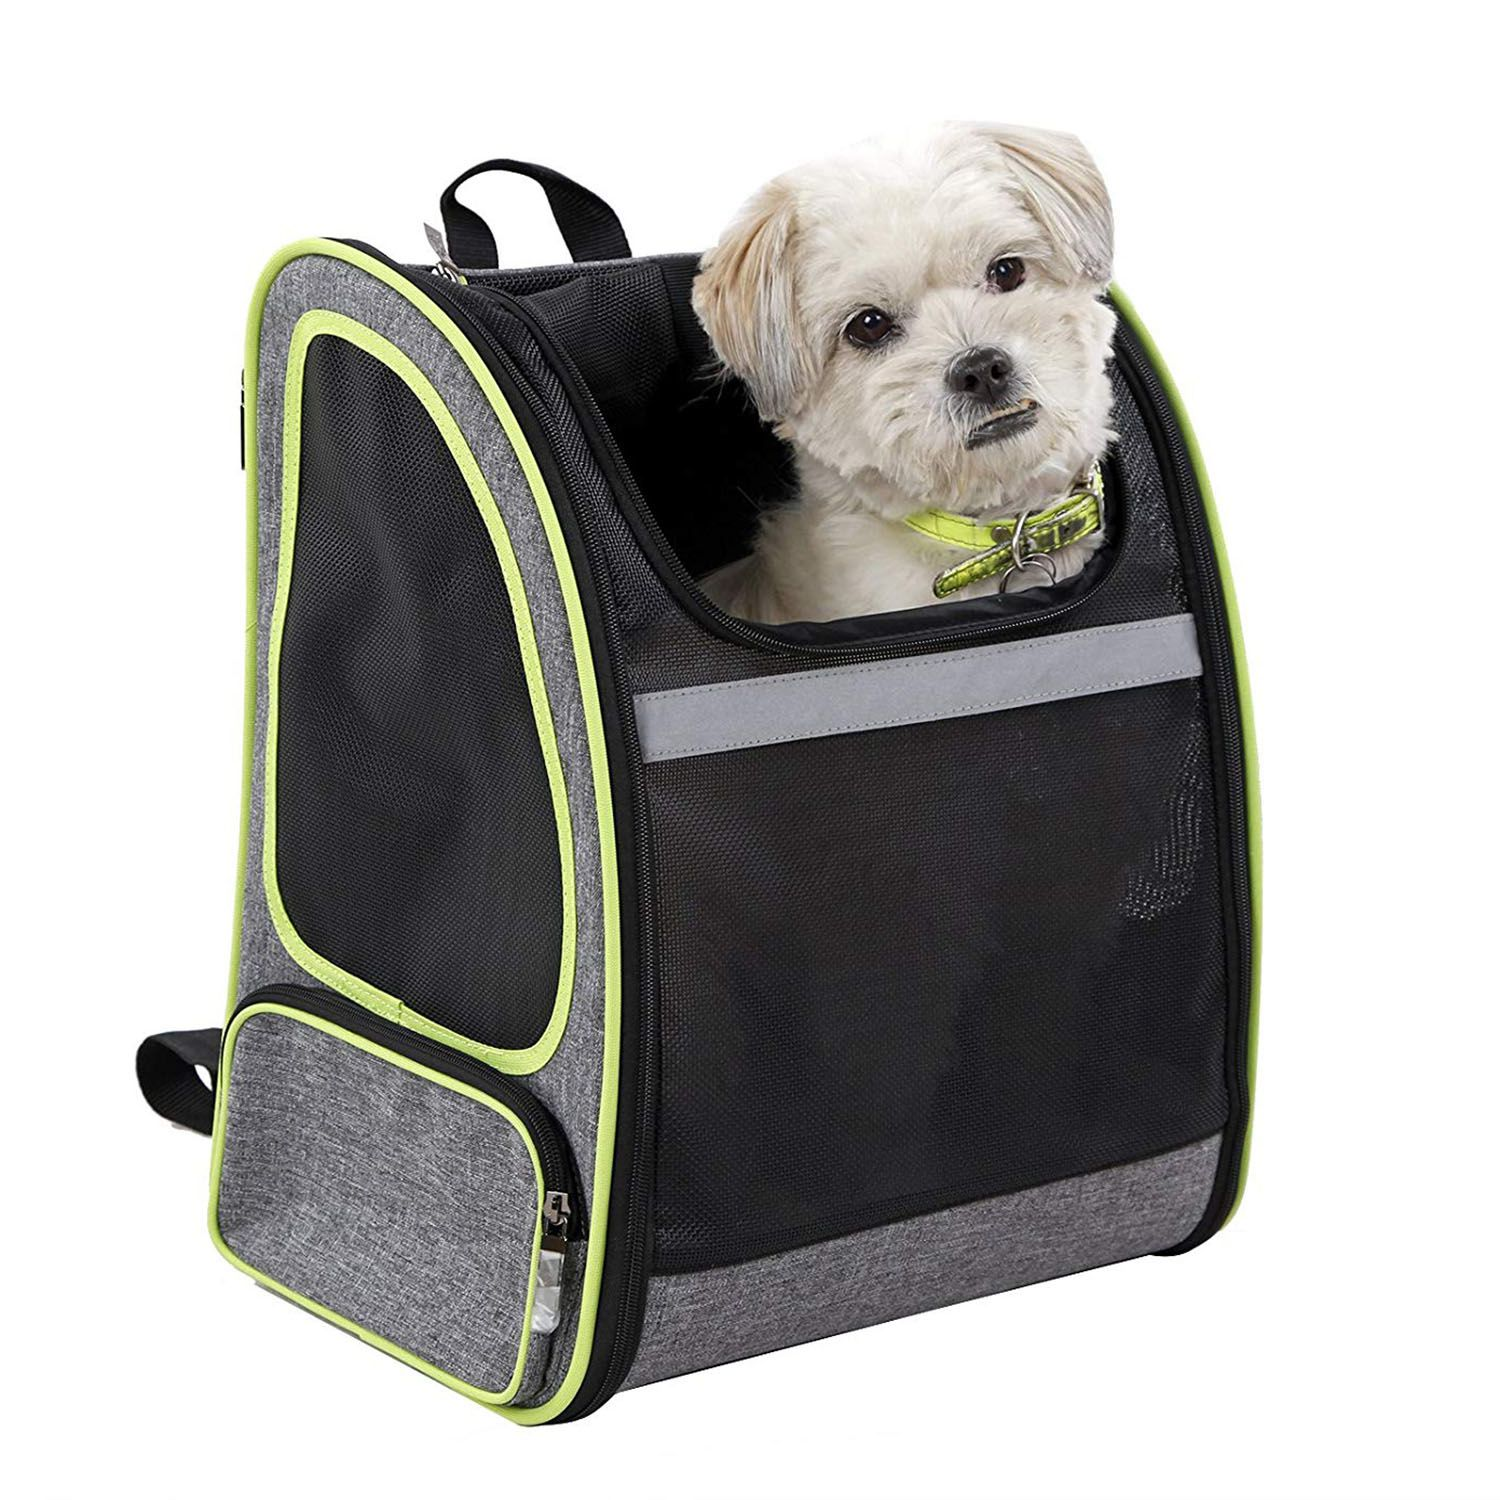 ABFP Premium Pet Carrier Backpack For Small Cats And Dogs Ventilated Design, Strap, Buckle Support Designed For Travel, Hiking